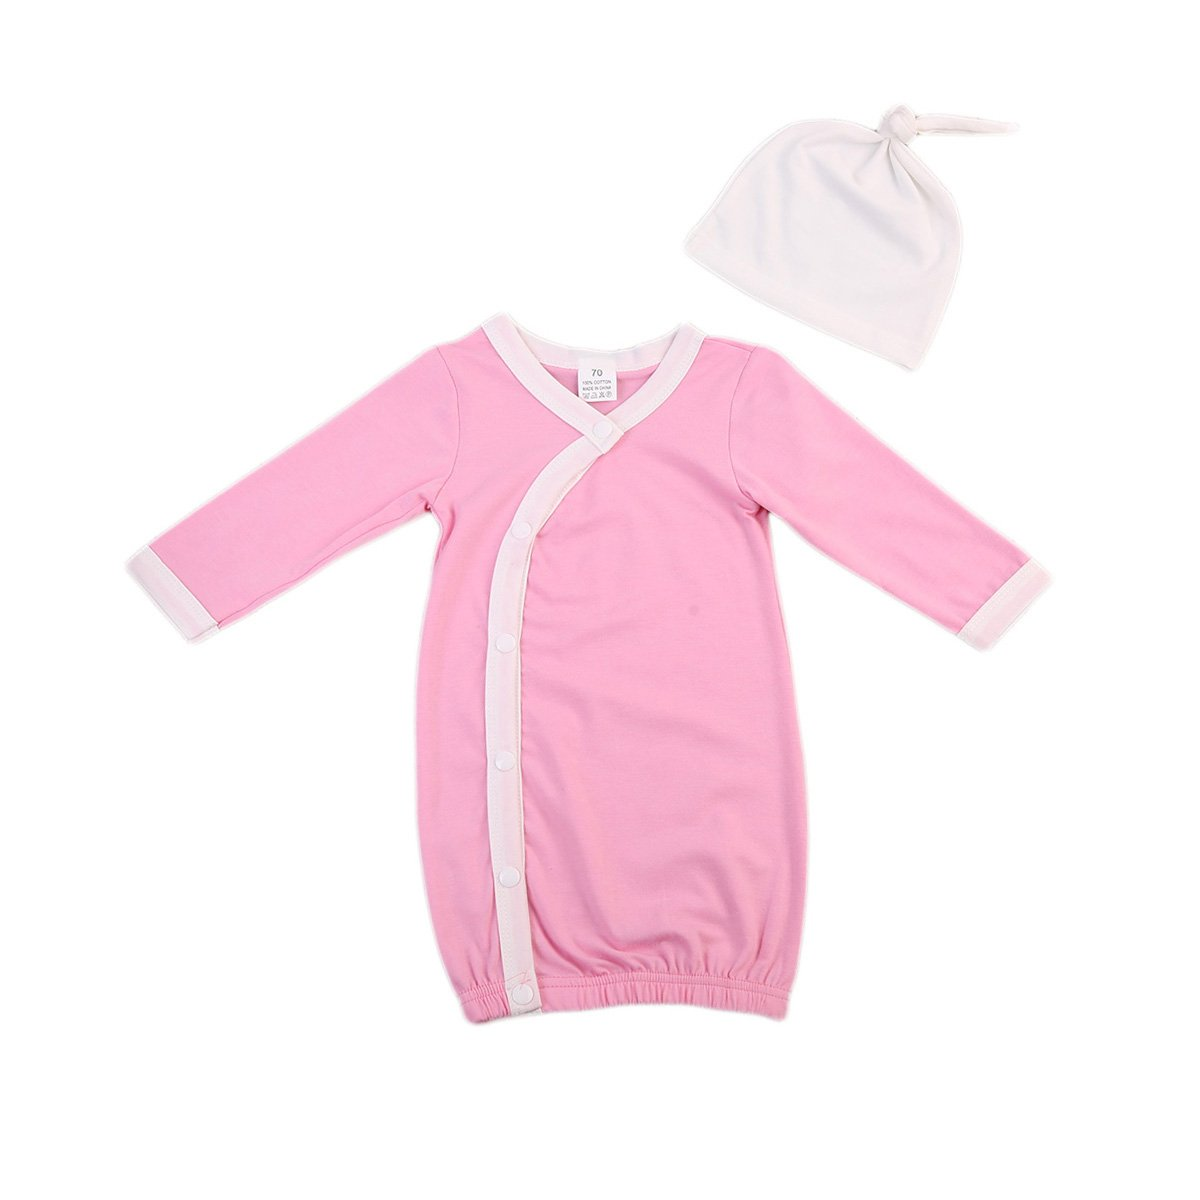 ITFABS Newborn Baby Boy Girl Nightgowns Cute Long Sleeve Cotton Pajamas Sleeper Wear with Hat